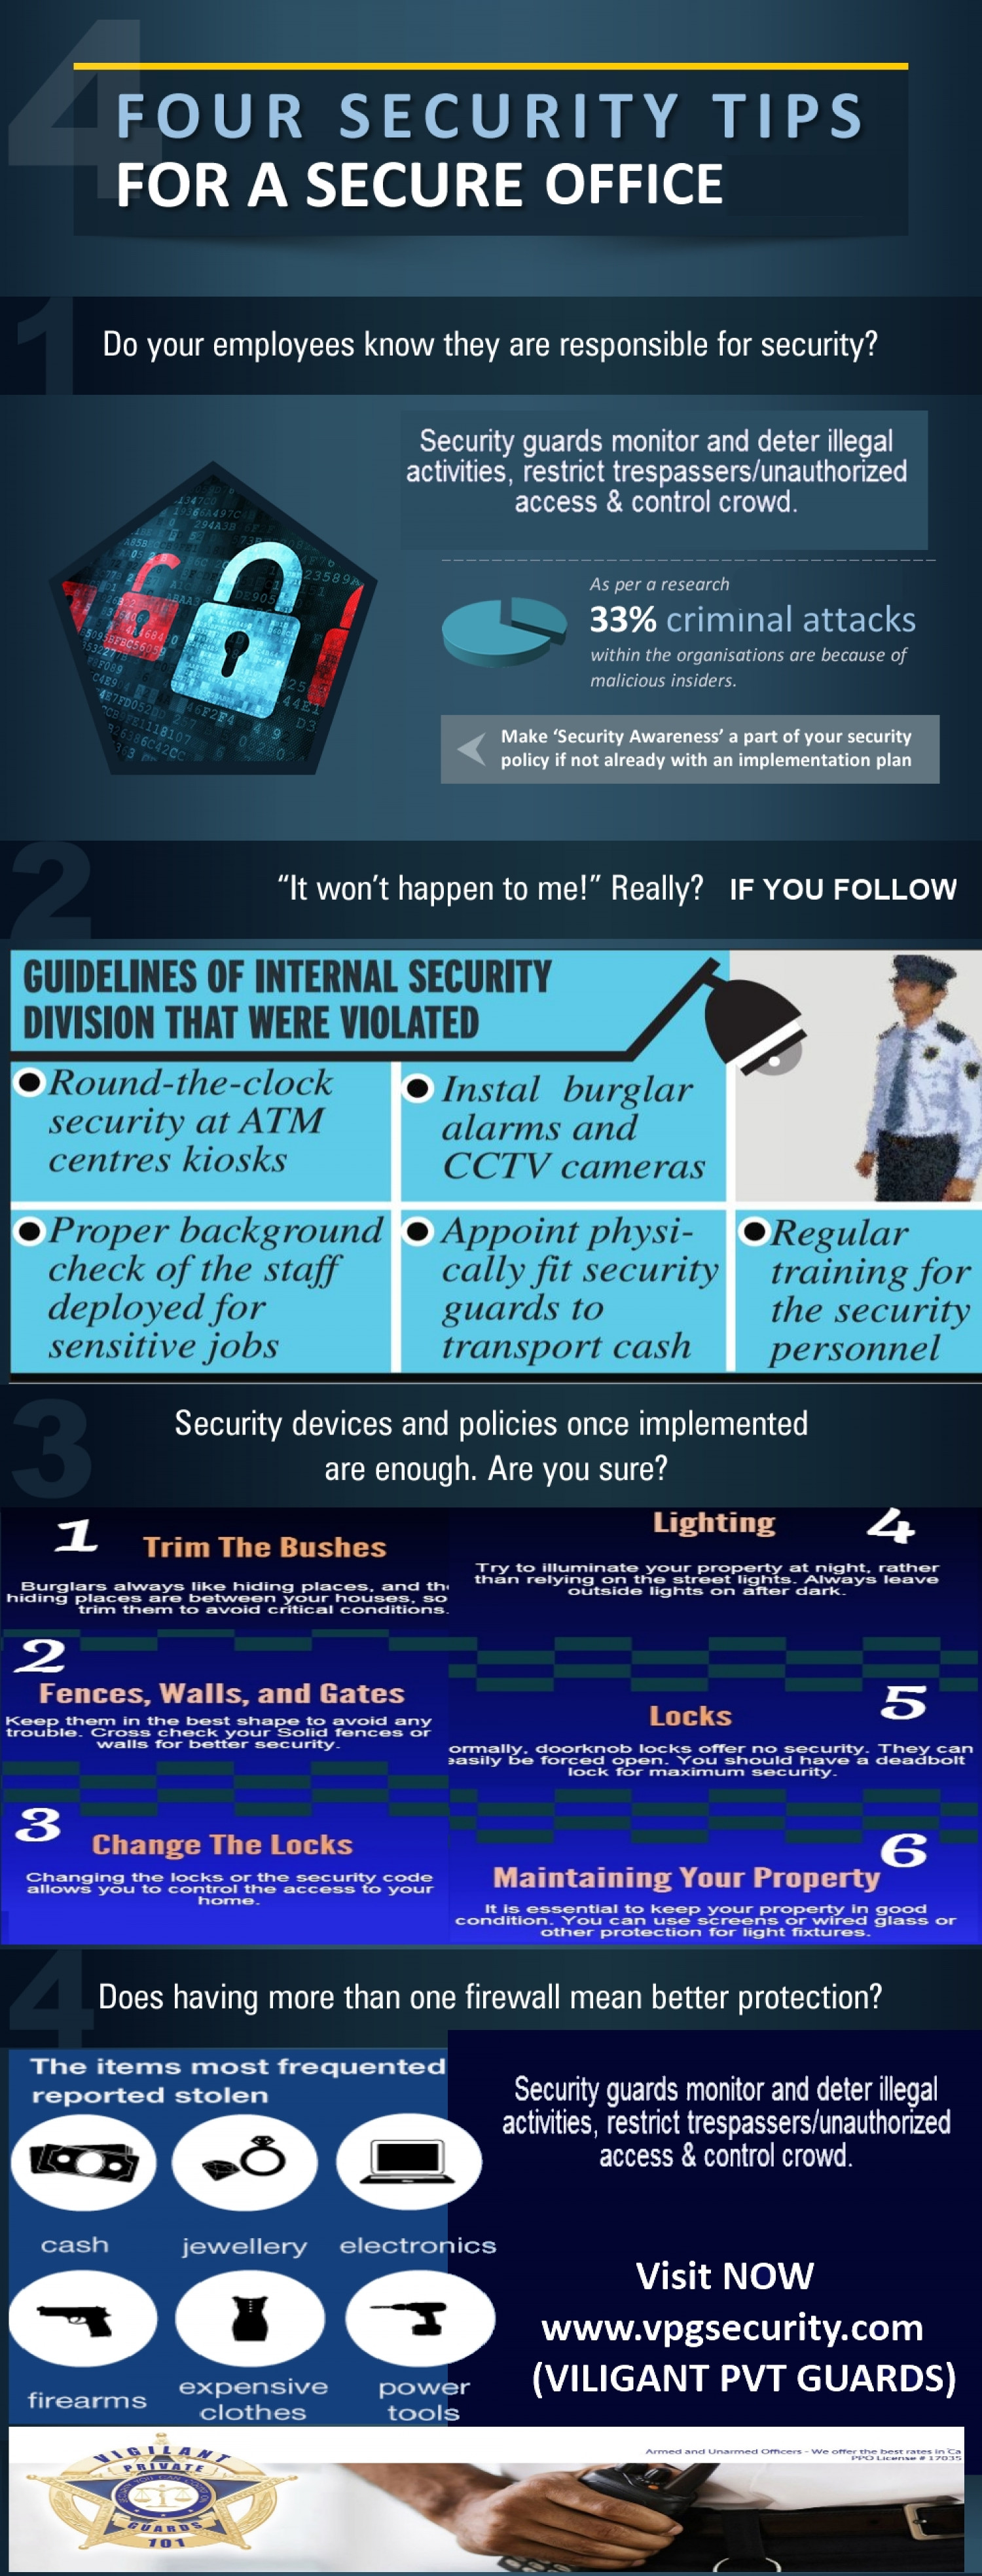 Four Security Tips for a Secure Office Infographic